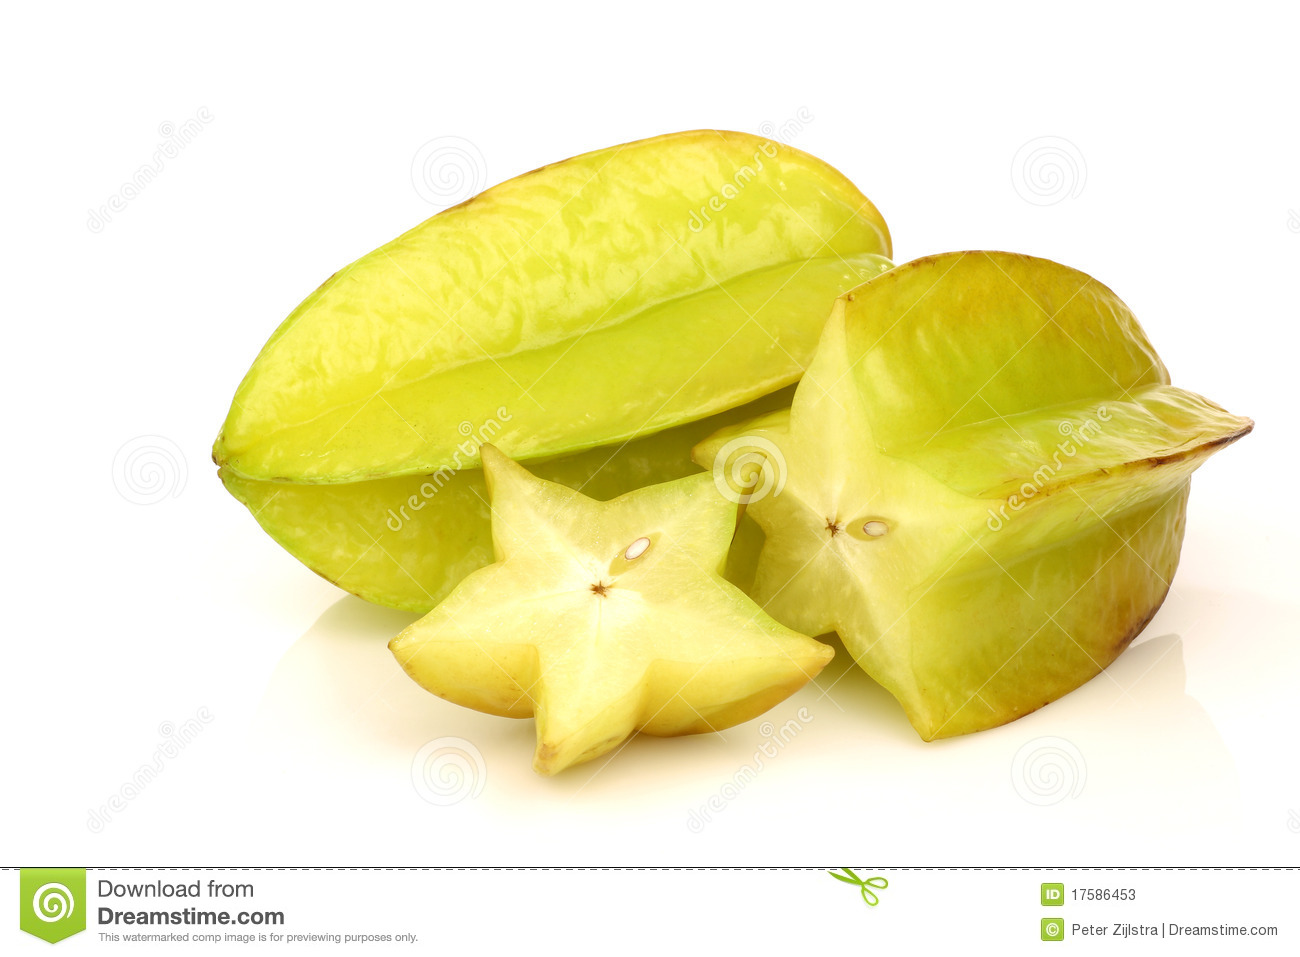 whole-carambola-fruit-cut-one-17586453.jpg